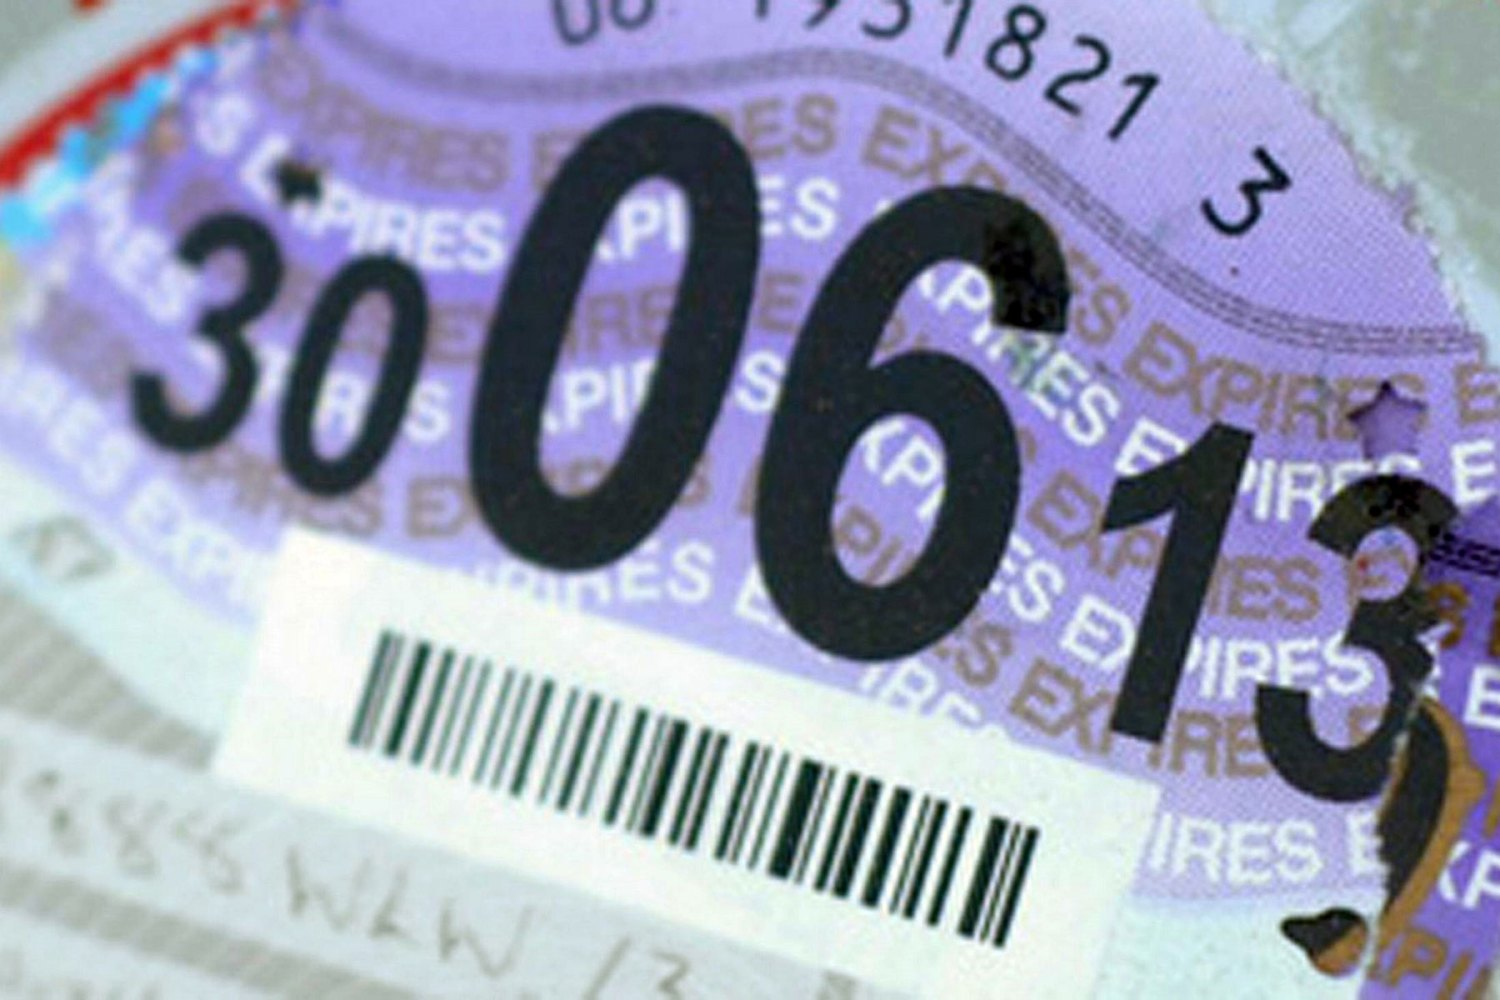 The end of the tax disc